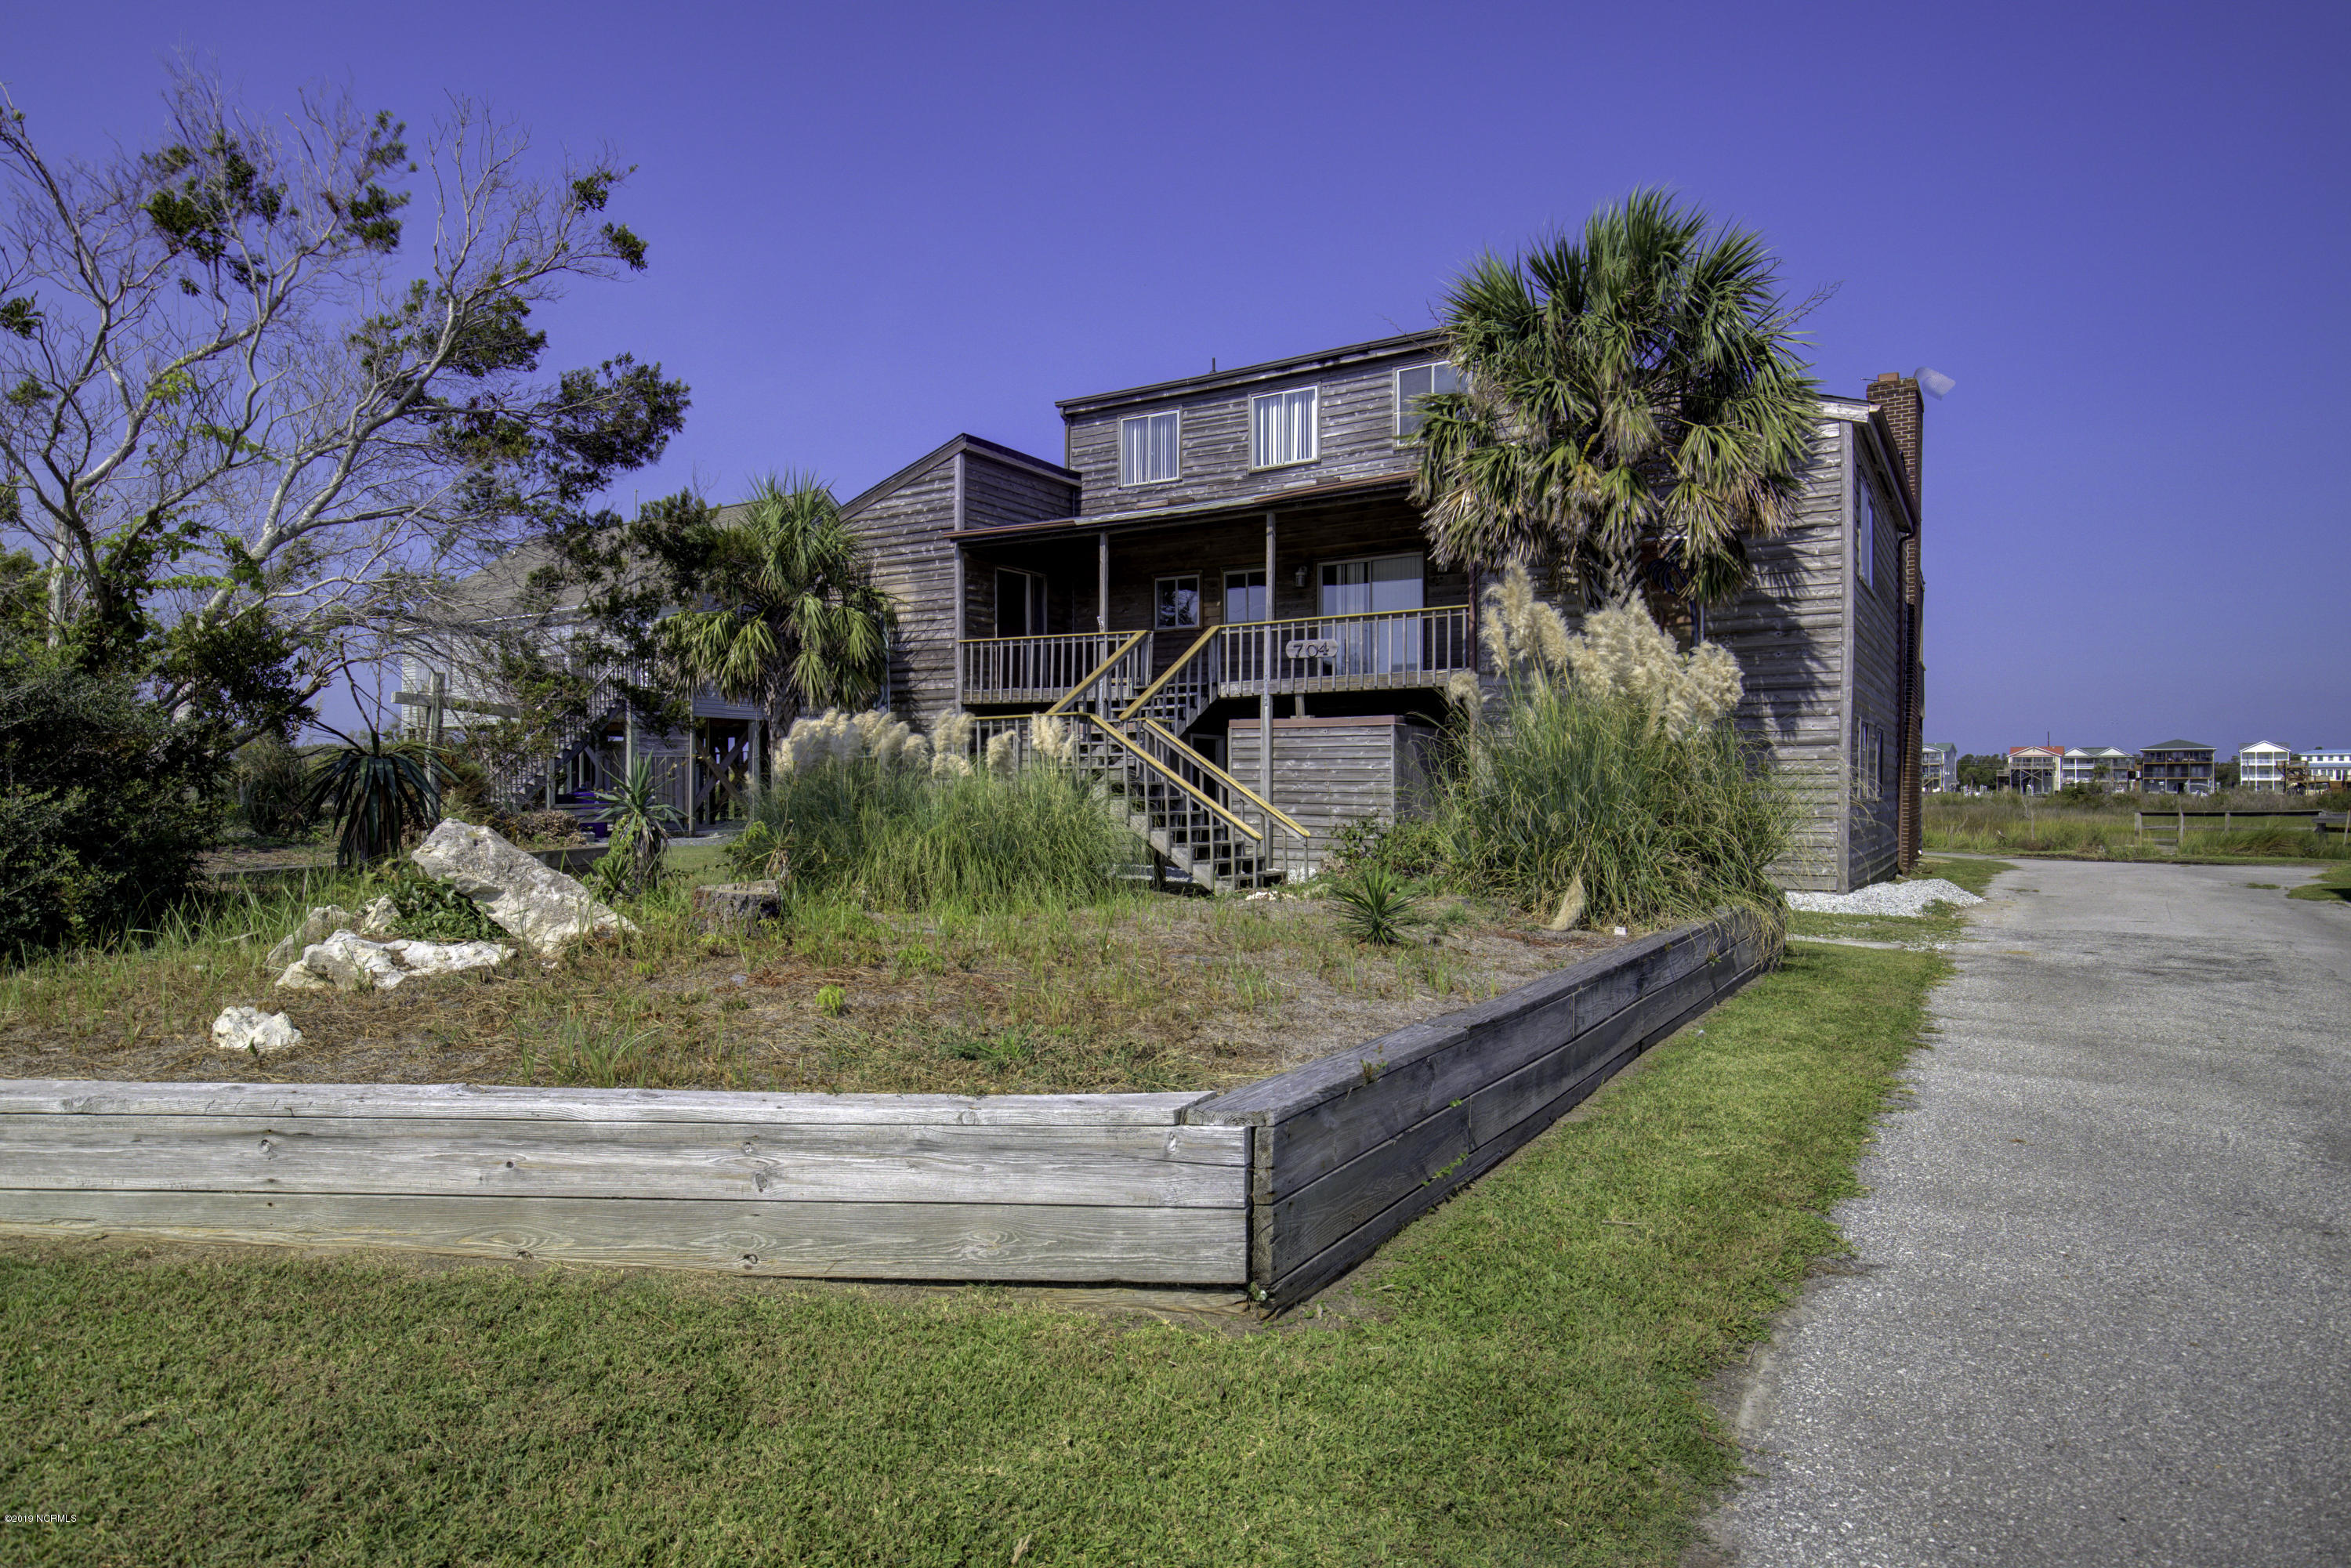 704 Trade Winds Drive, North Topsail Beach, North Carolina 28460, 5 Bedrooms Bedrooms, ,5 BathroomsBathrooms,Residential,For Sale,Trade Winds,100126032